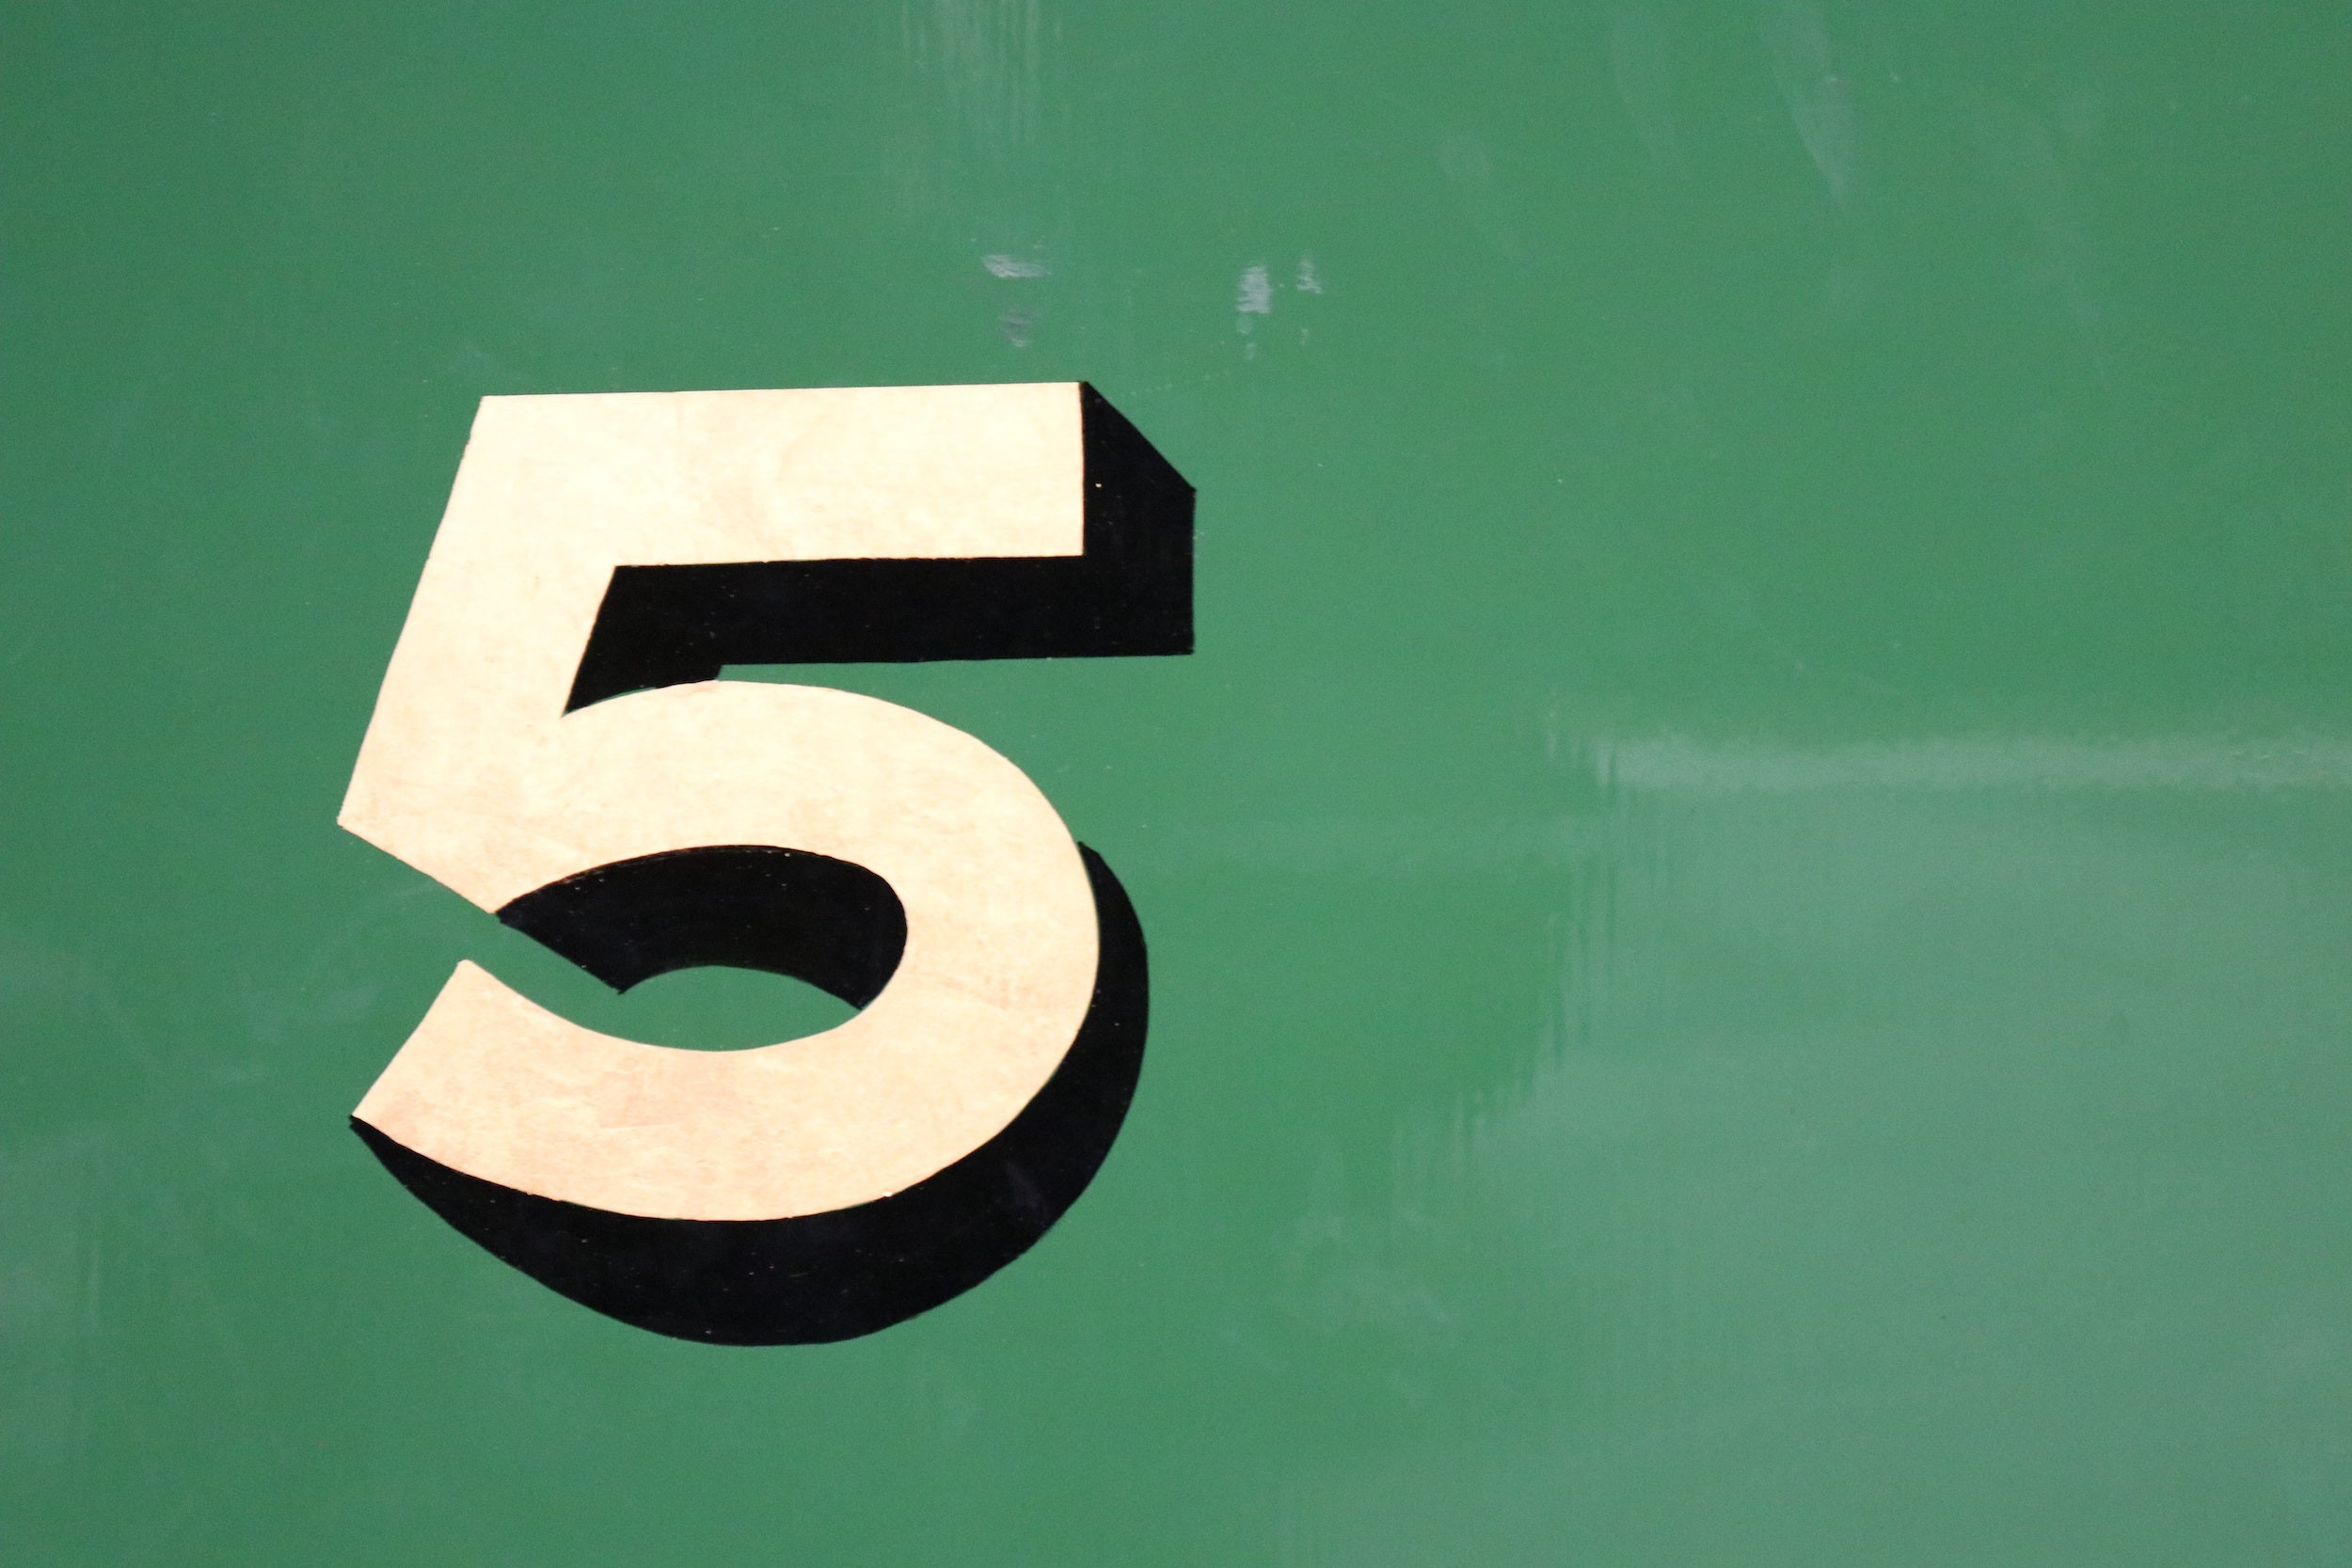 The number 5 on a green background